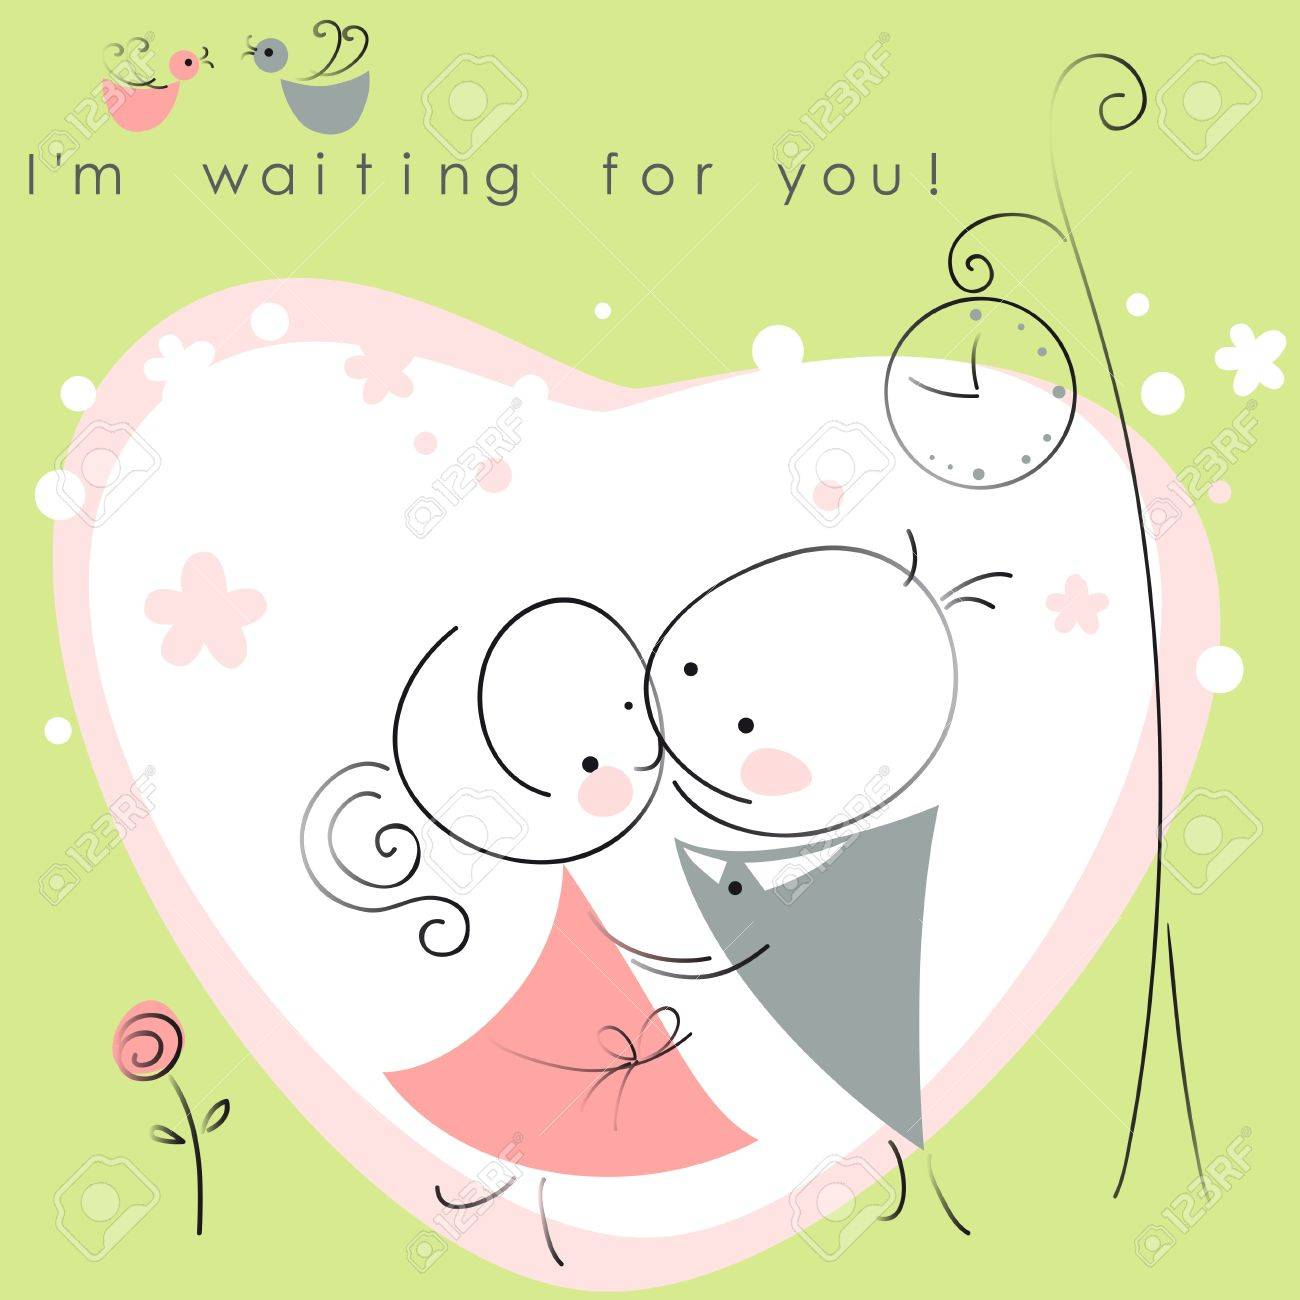 valentines couple,  meet on a date under the clock, green background of heart  . Vector illustration of Valentine card Stock Vector - 11595922